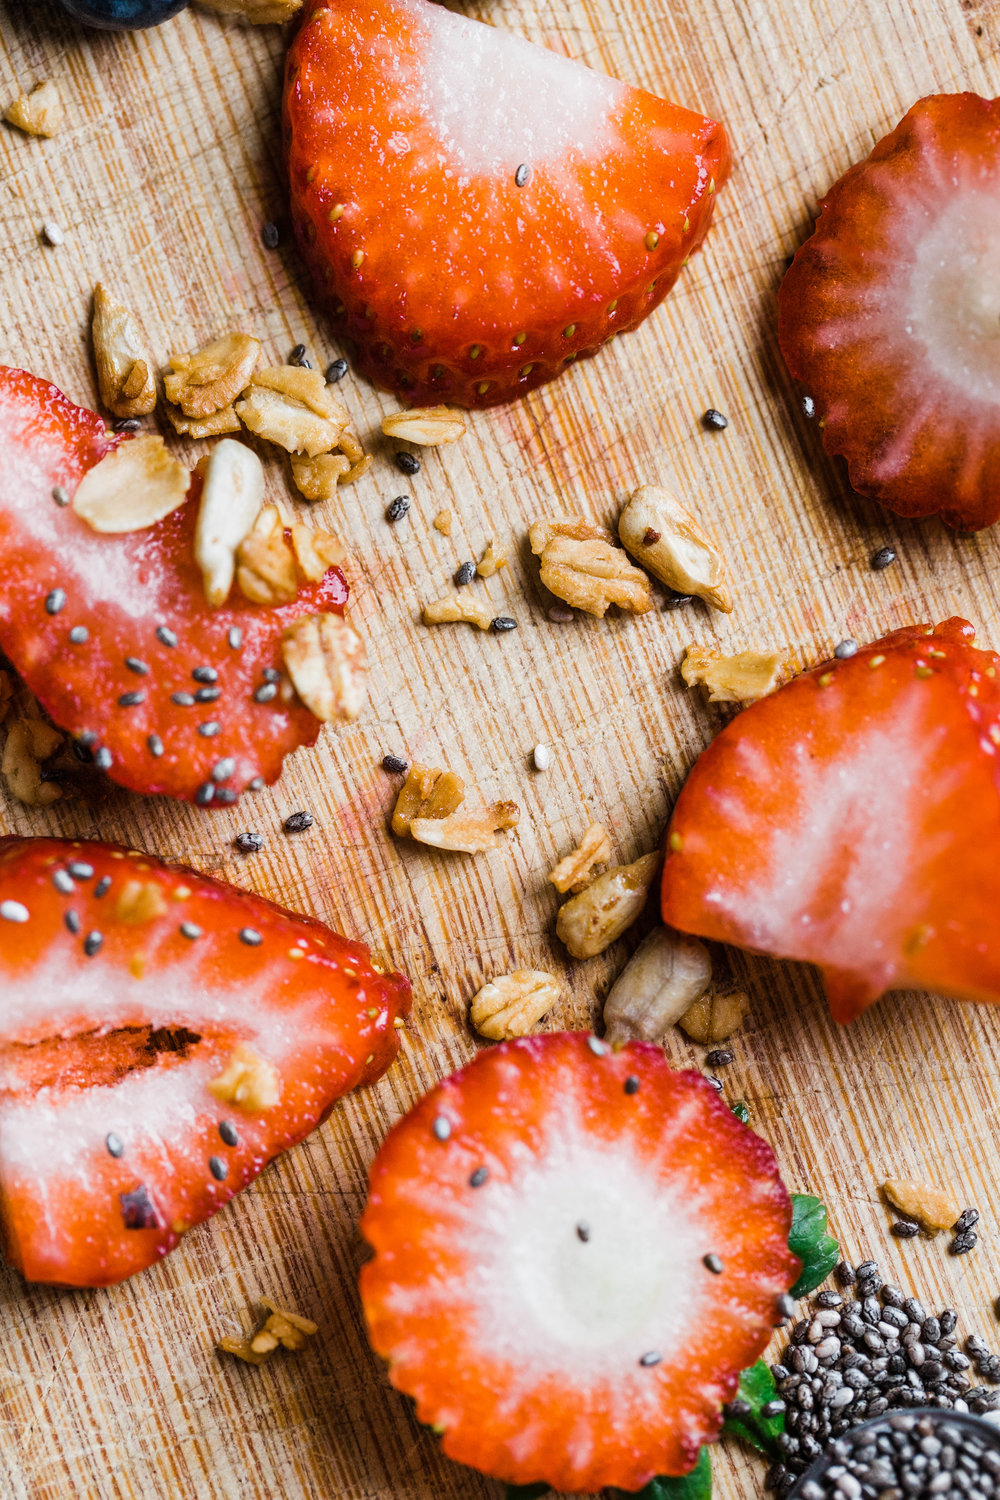 Strawberries with Granola